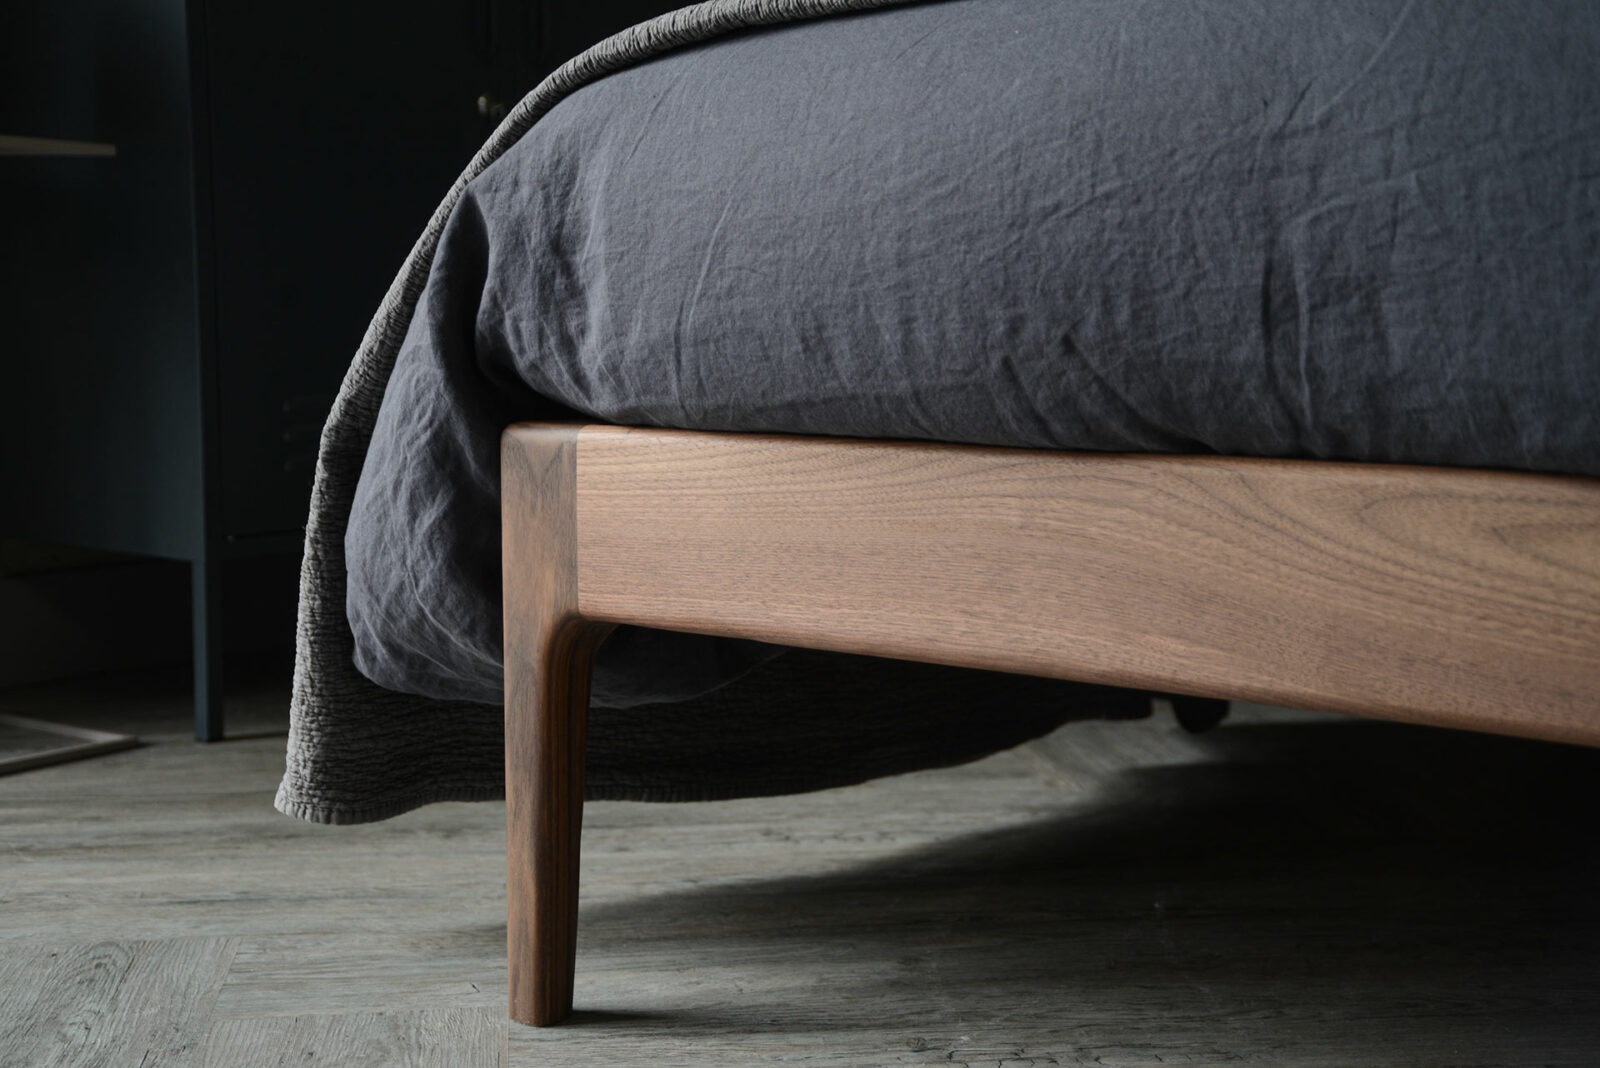 A closer view of the solid wood Bloomsbury bed leg, here in solid walnut